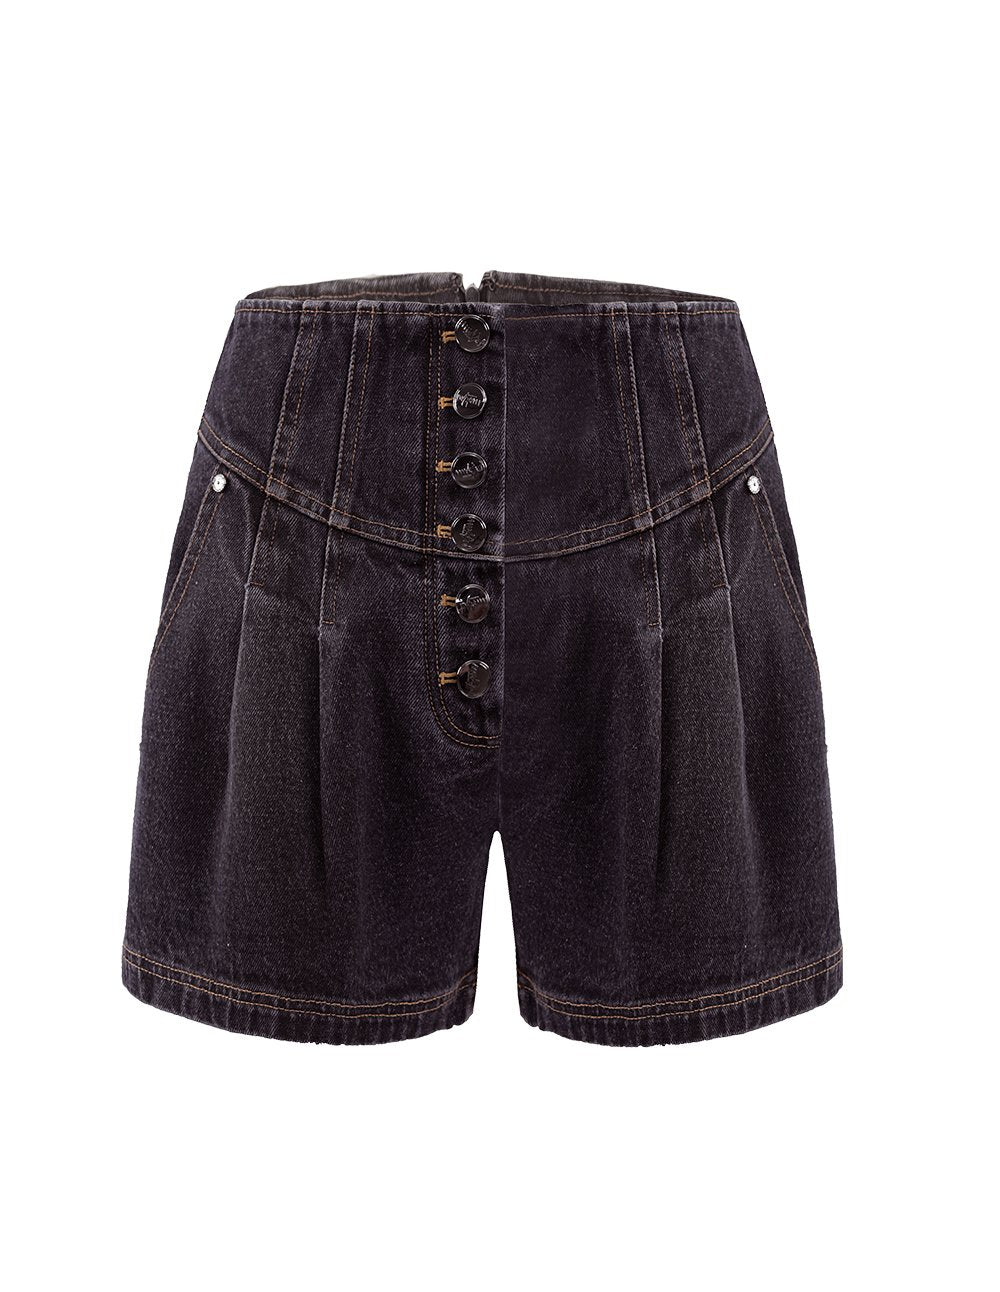 MARK FAST Women High Waist Button Up Wide Leg Denim Shorts